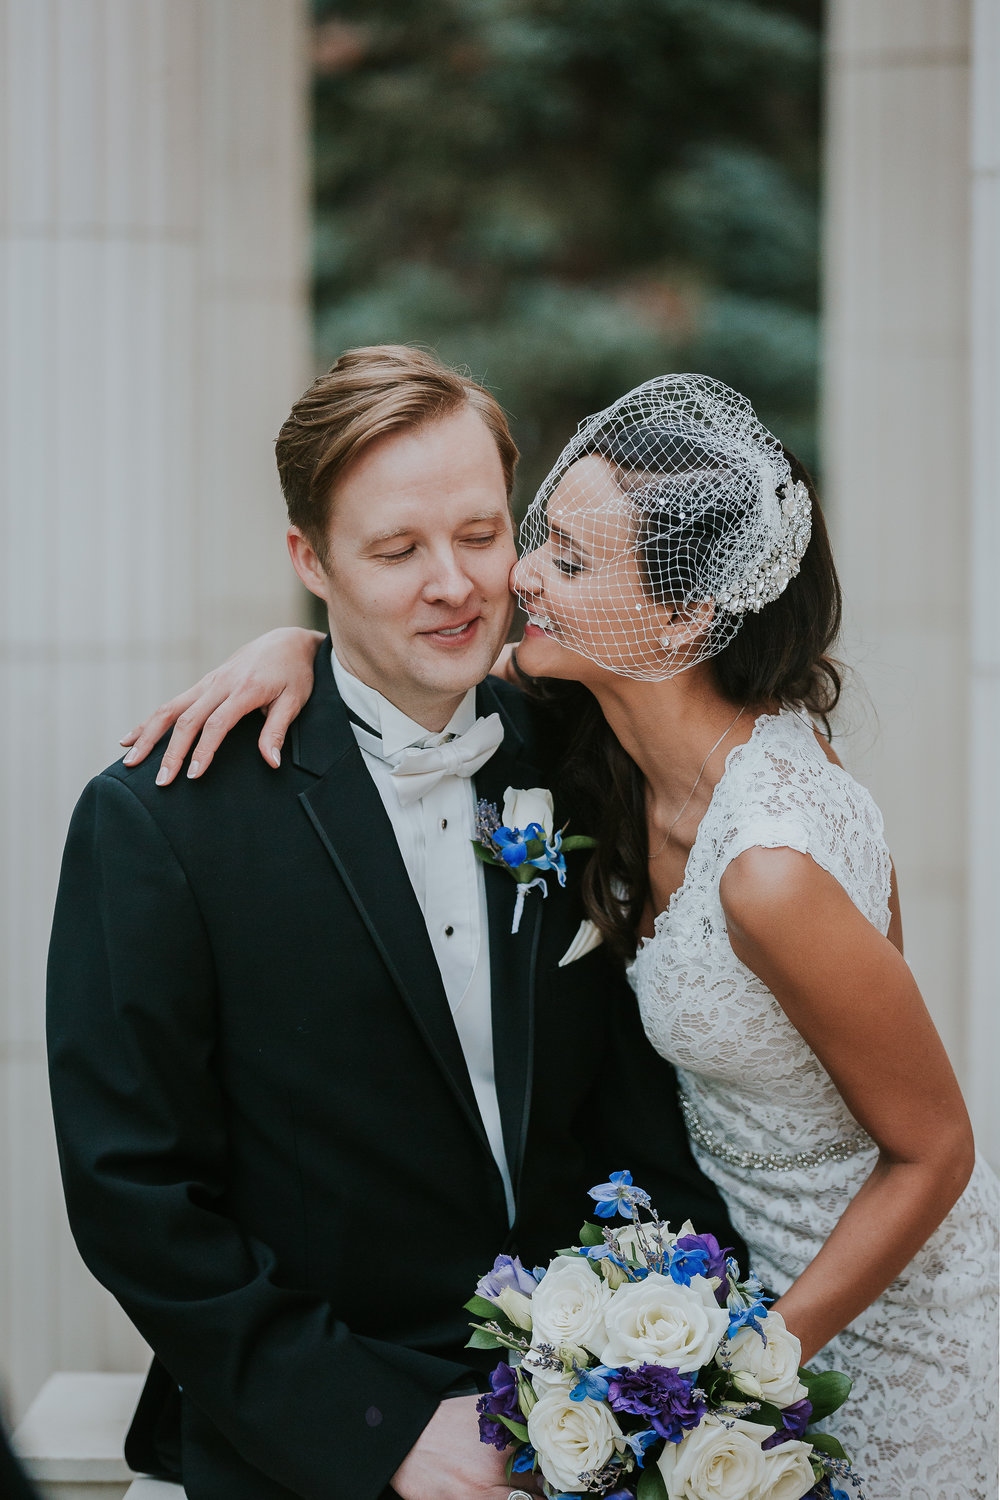 Annique and Travis' Grant-Humphreys Mansion Spring Wedding